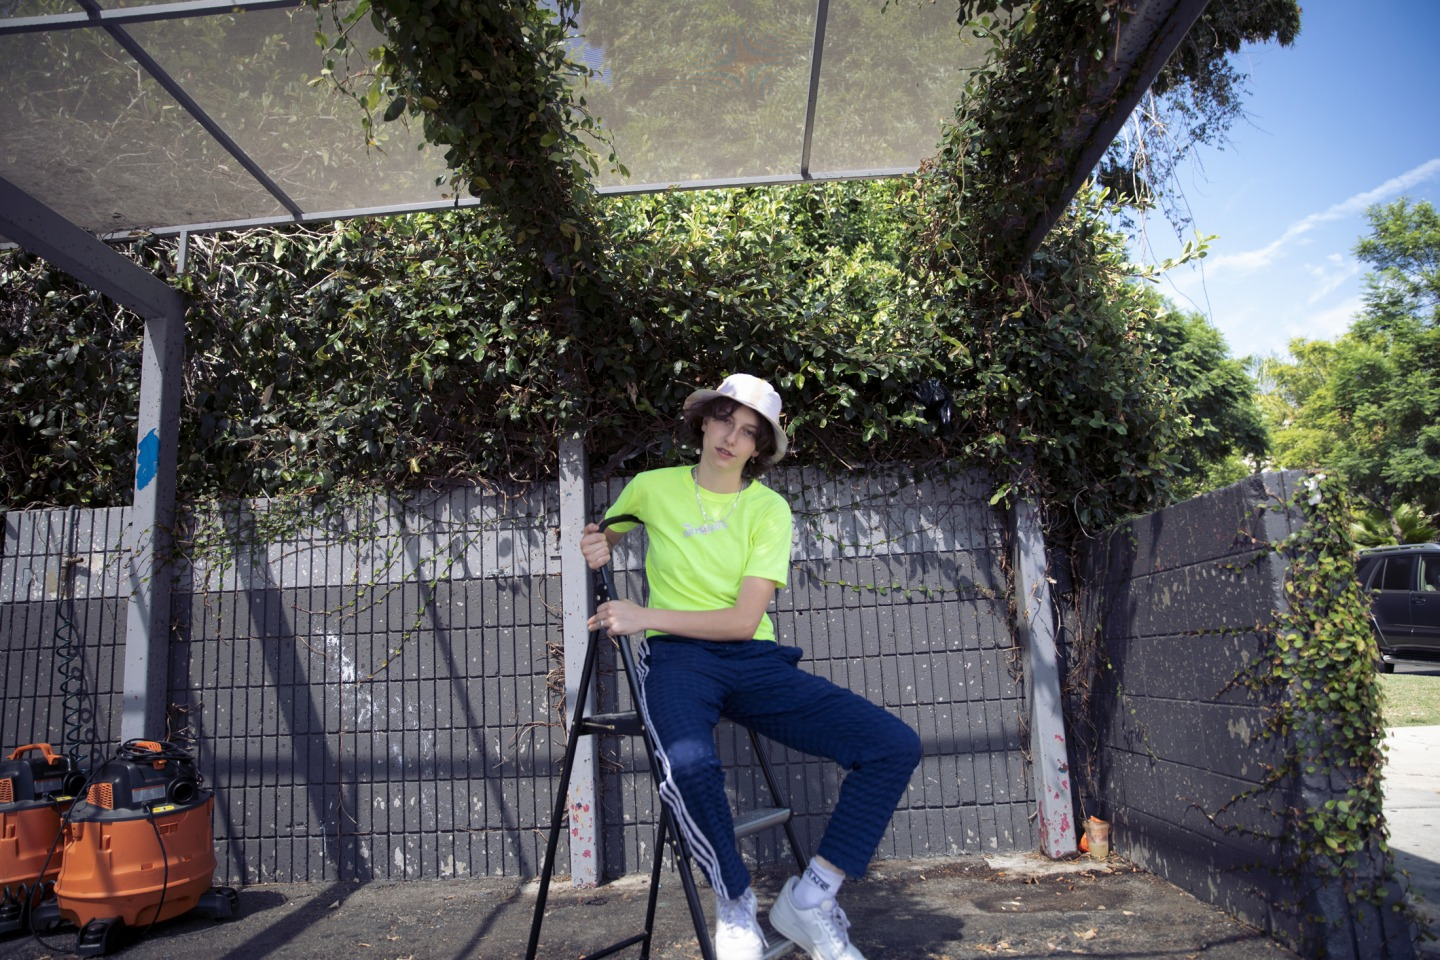 King Princess takes control